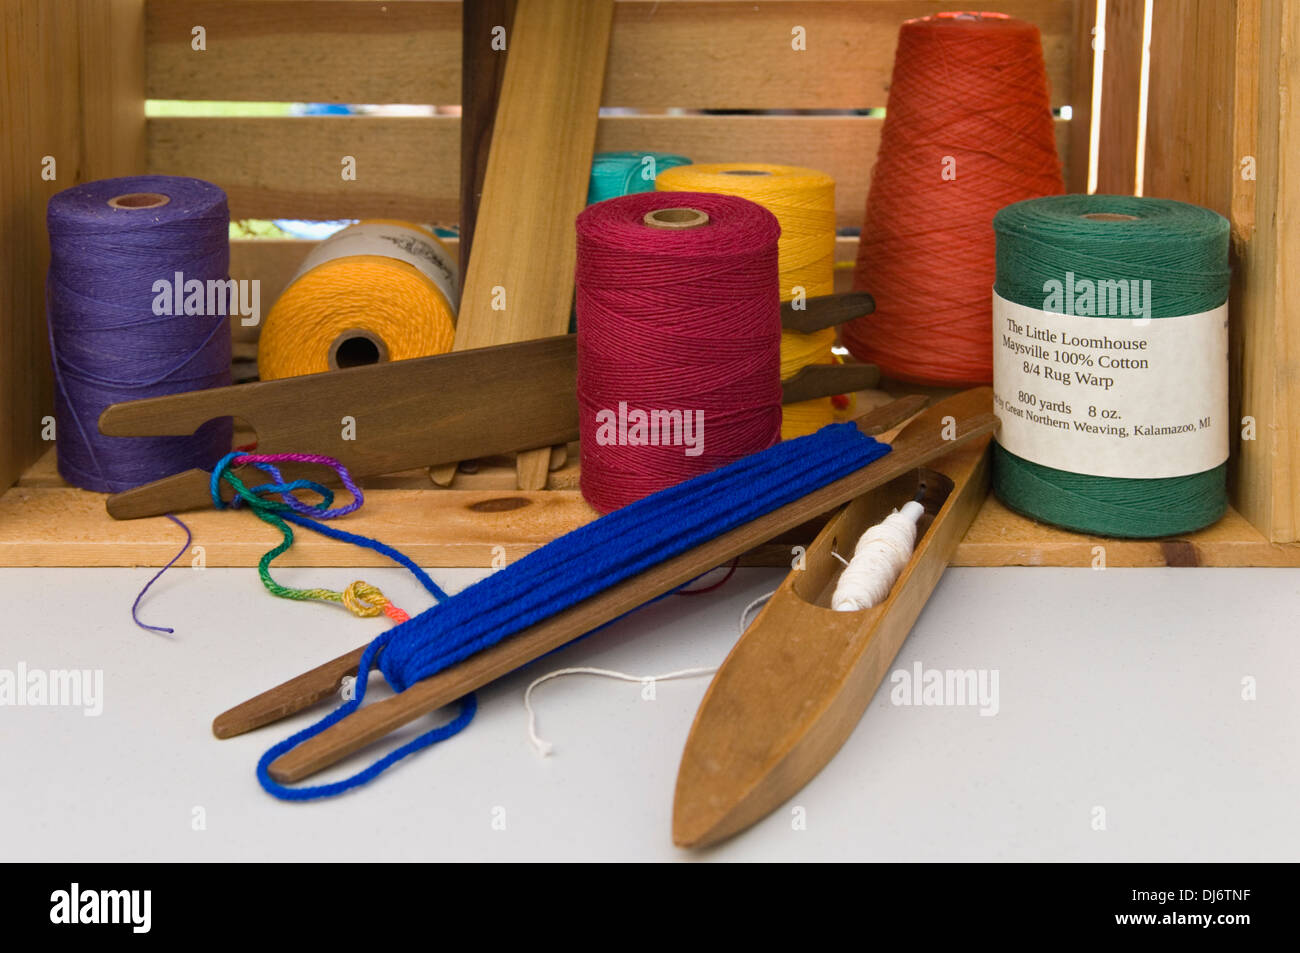 Yarn and Shuttles on Display by The Little Loomhouse in Louisville, Kentucky - Stock Image